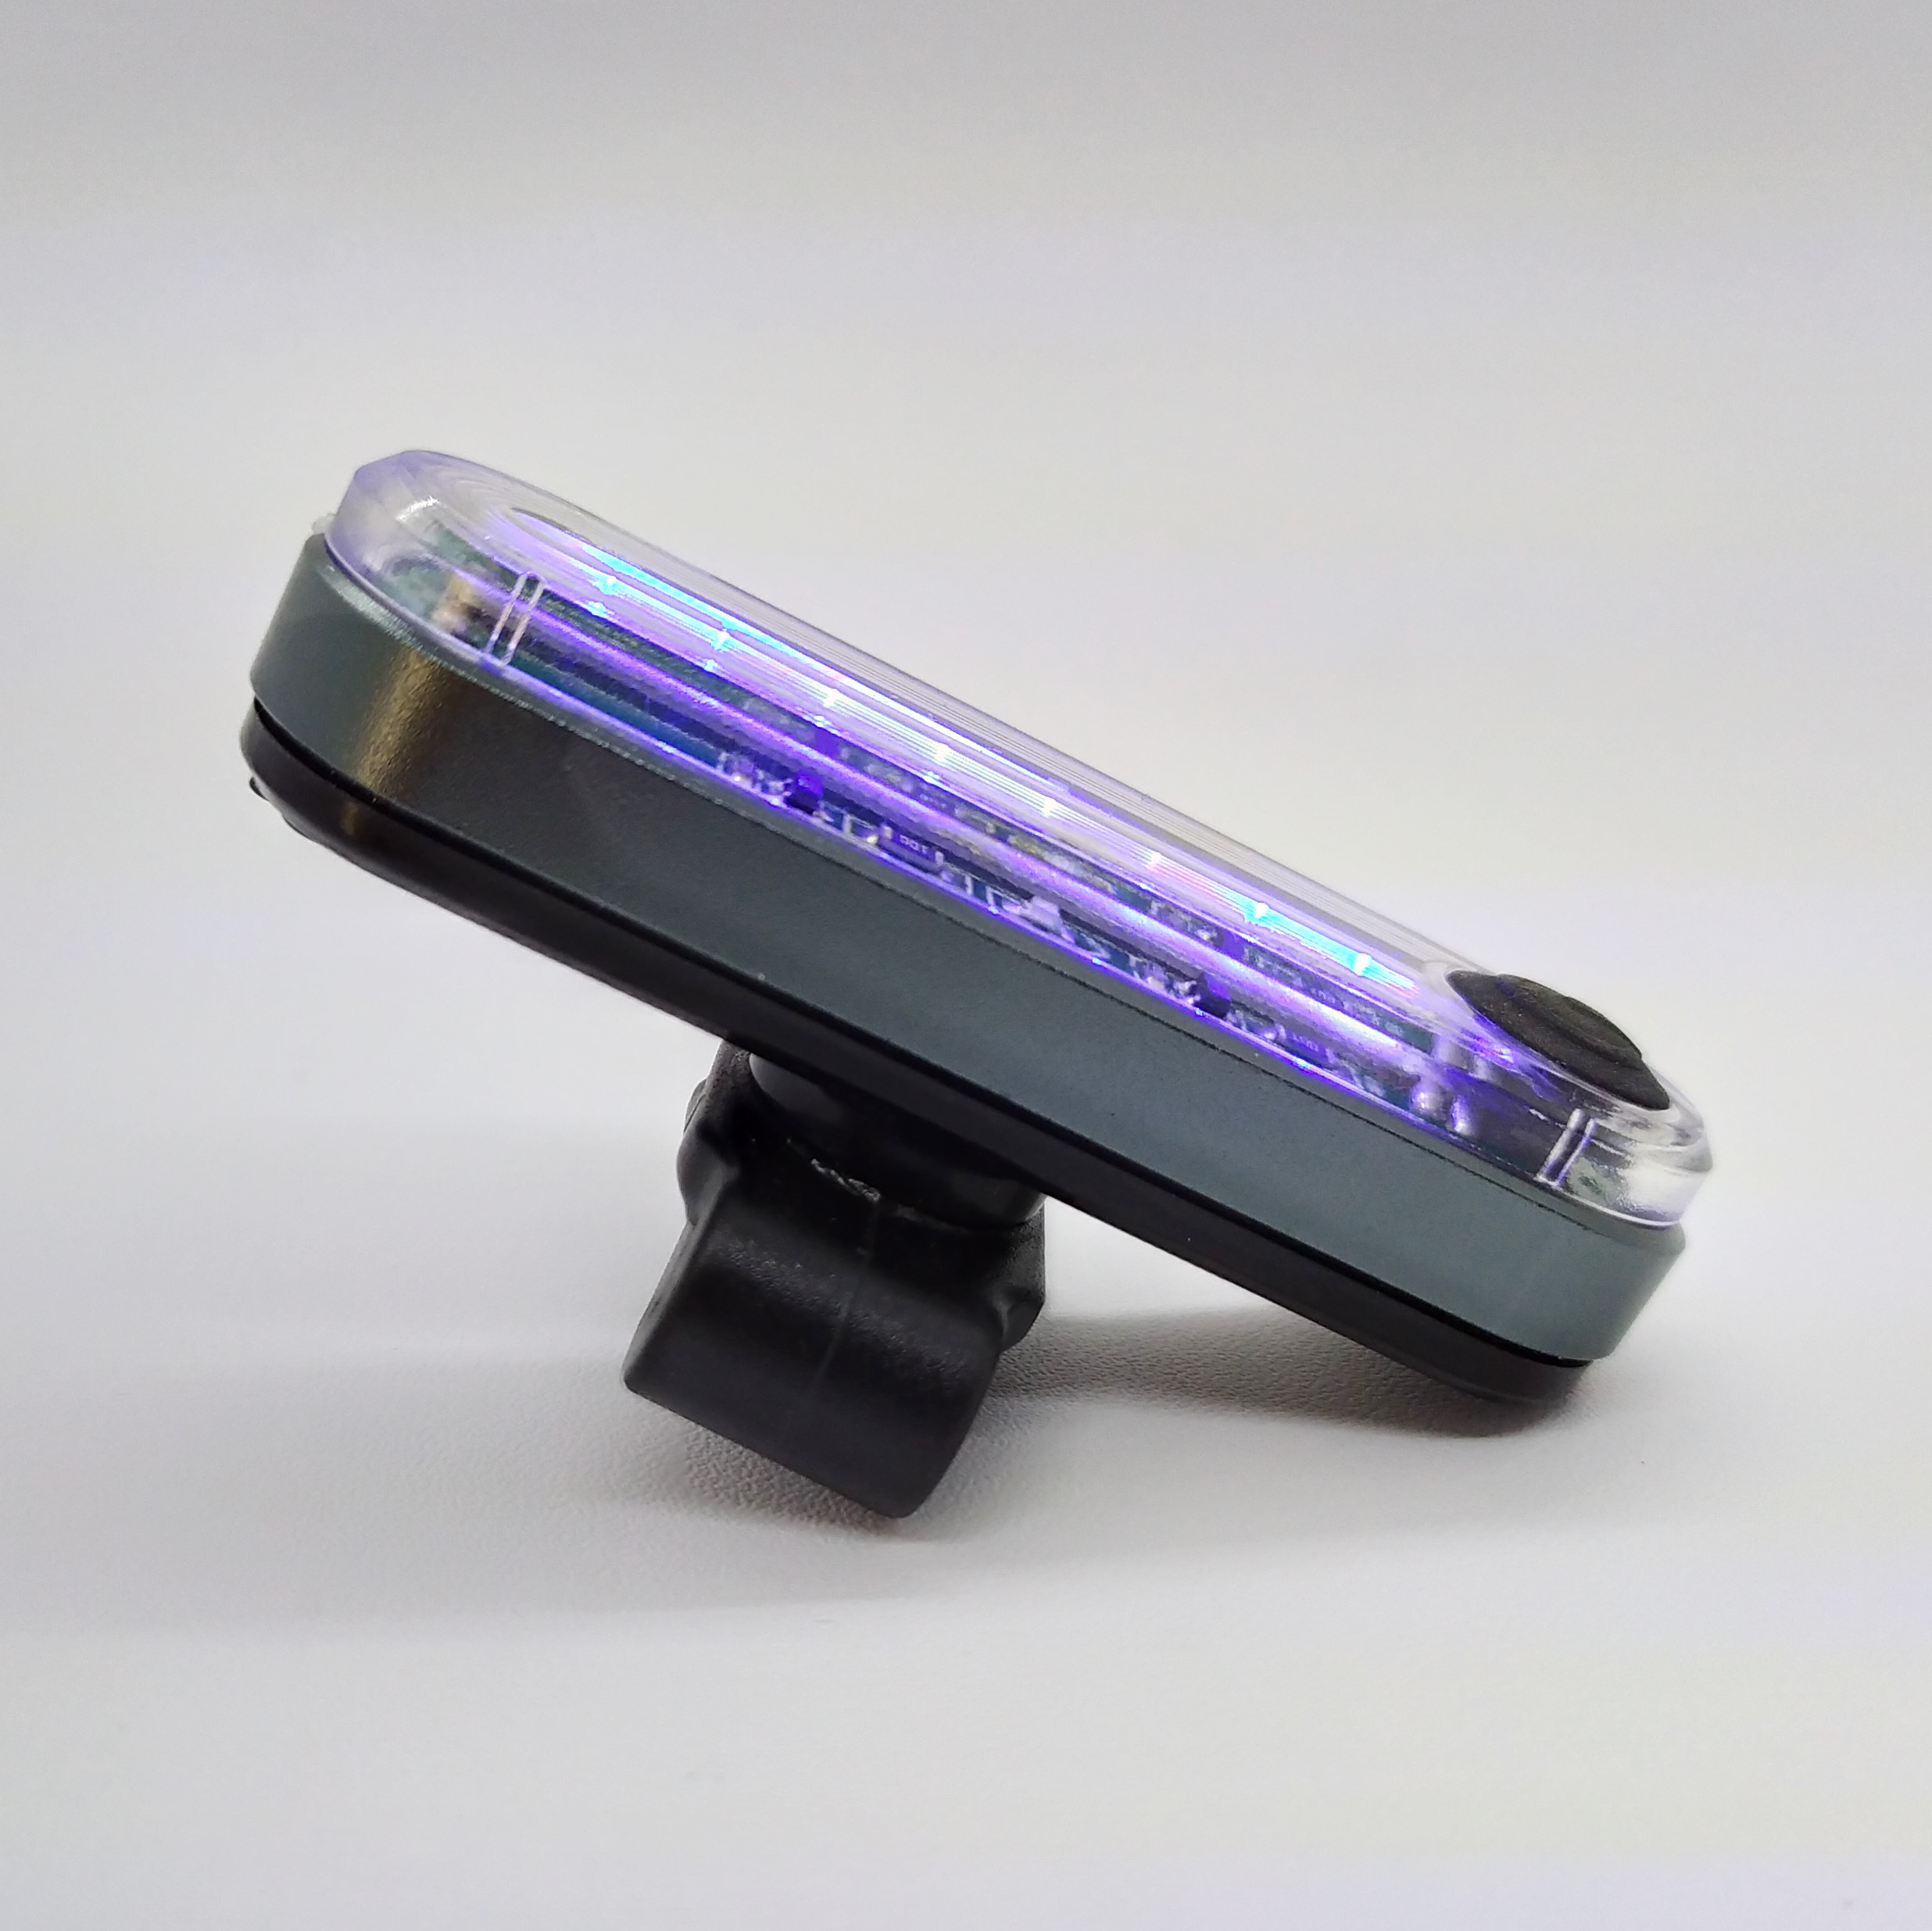 IMG 20200616 135924 - Cob USB rechargeable tail light